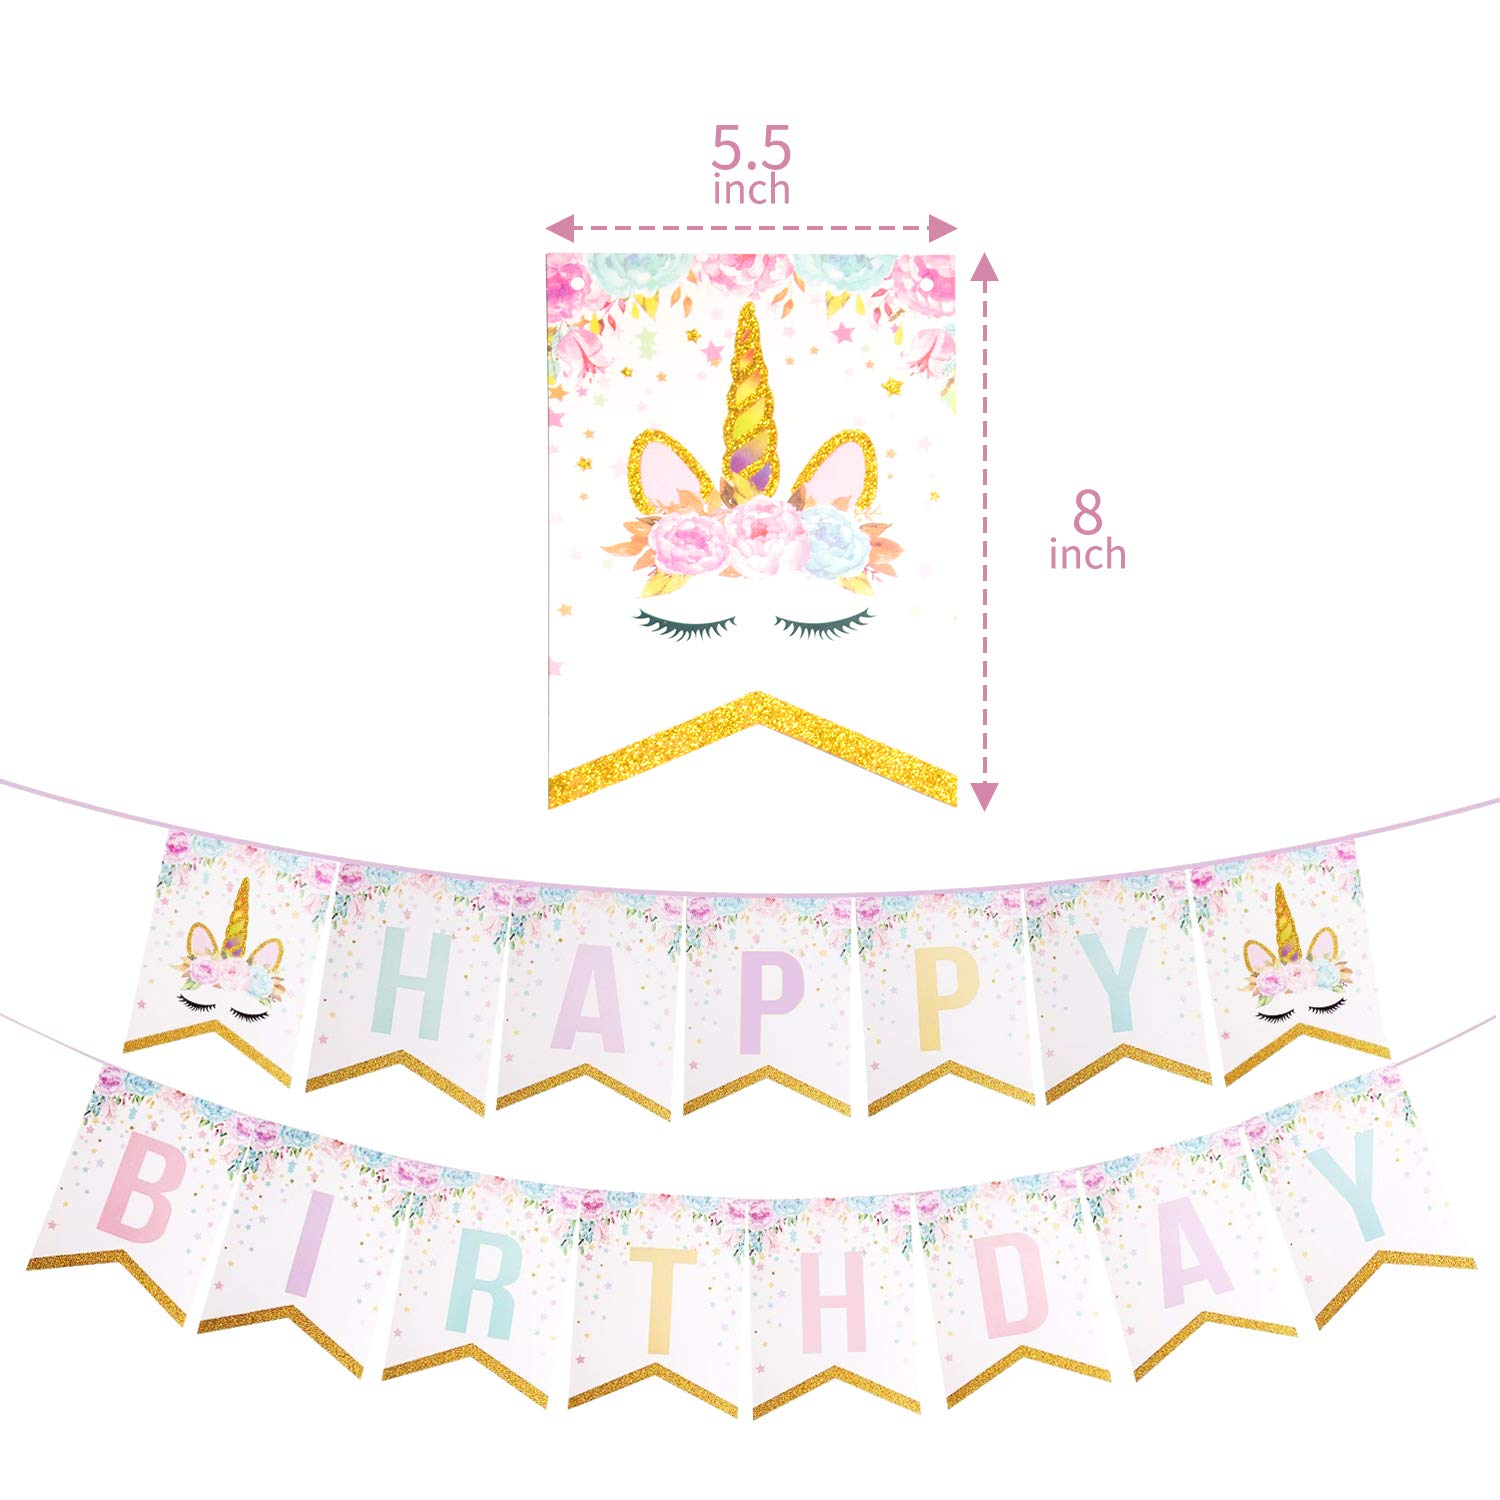 Birthday Party Supplies and Decorations Pink and Gold Unicorn Birthday Happy Birthday Party Favors By: The Life of the Party